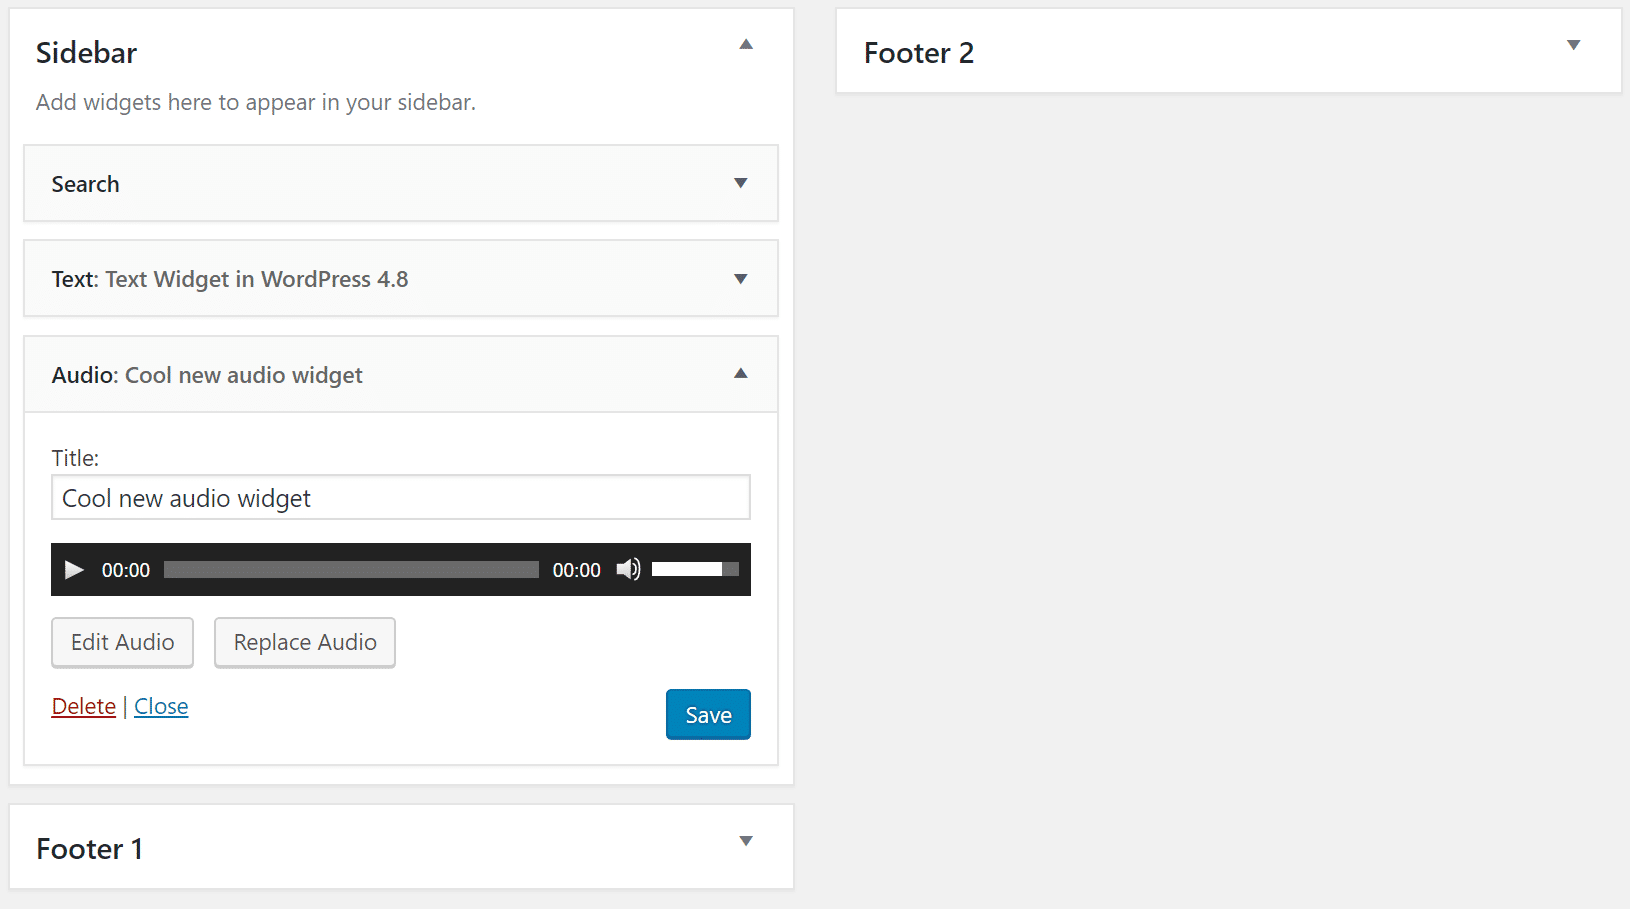 wordpress 4.8 audio widget